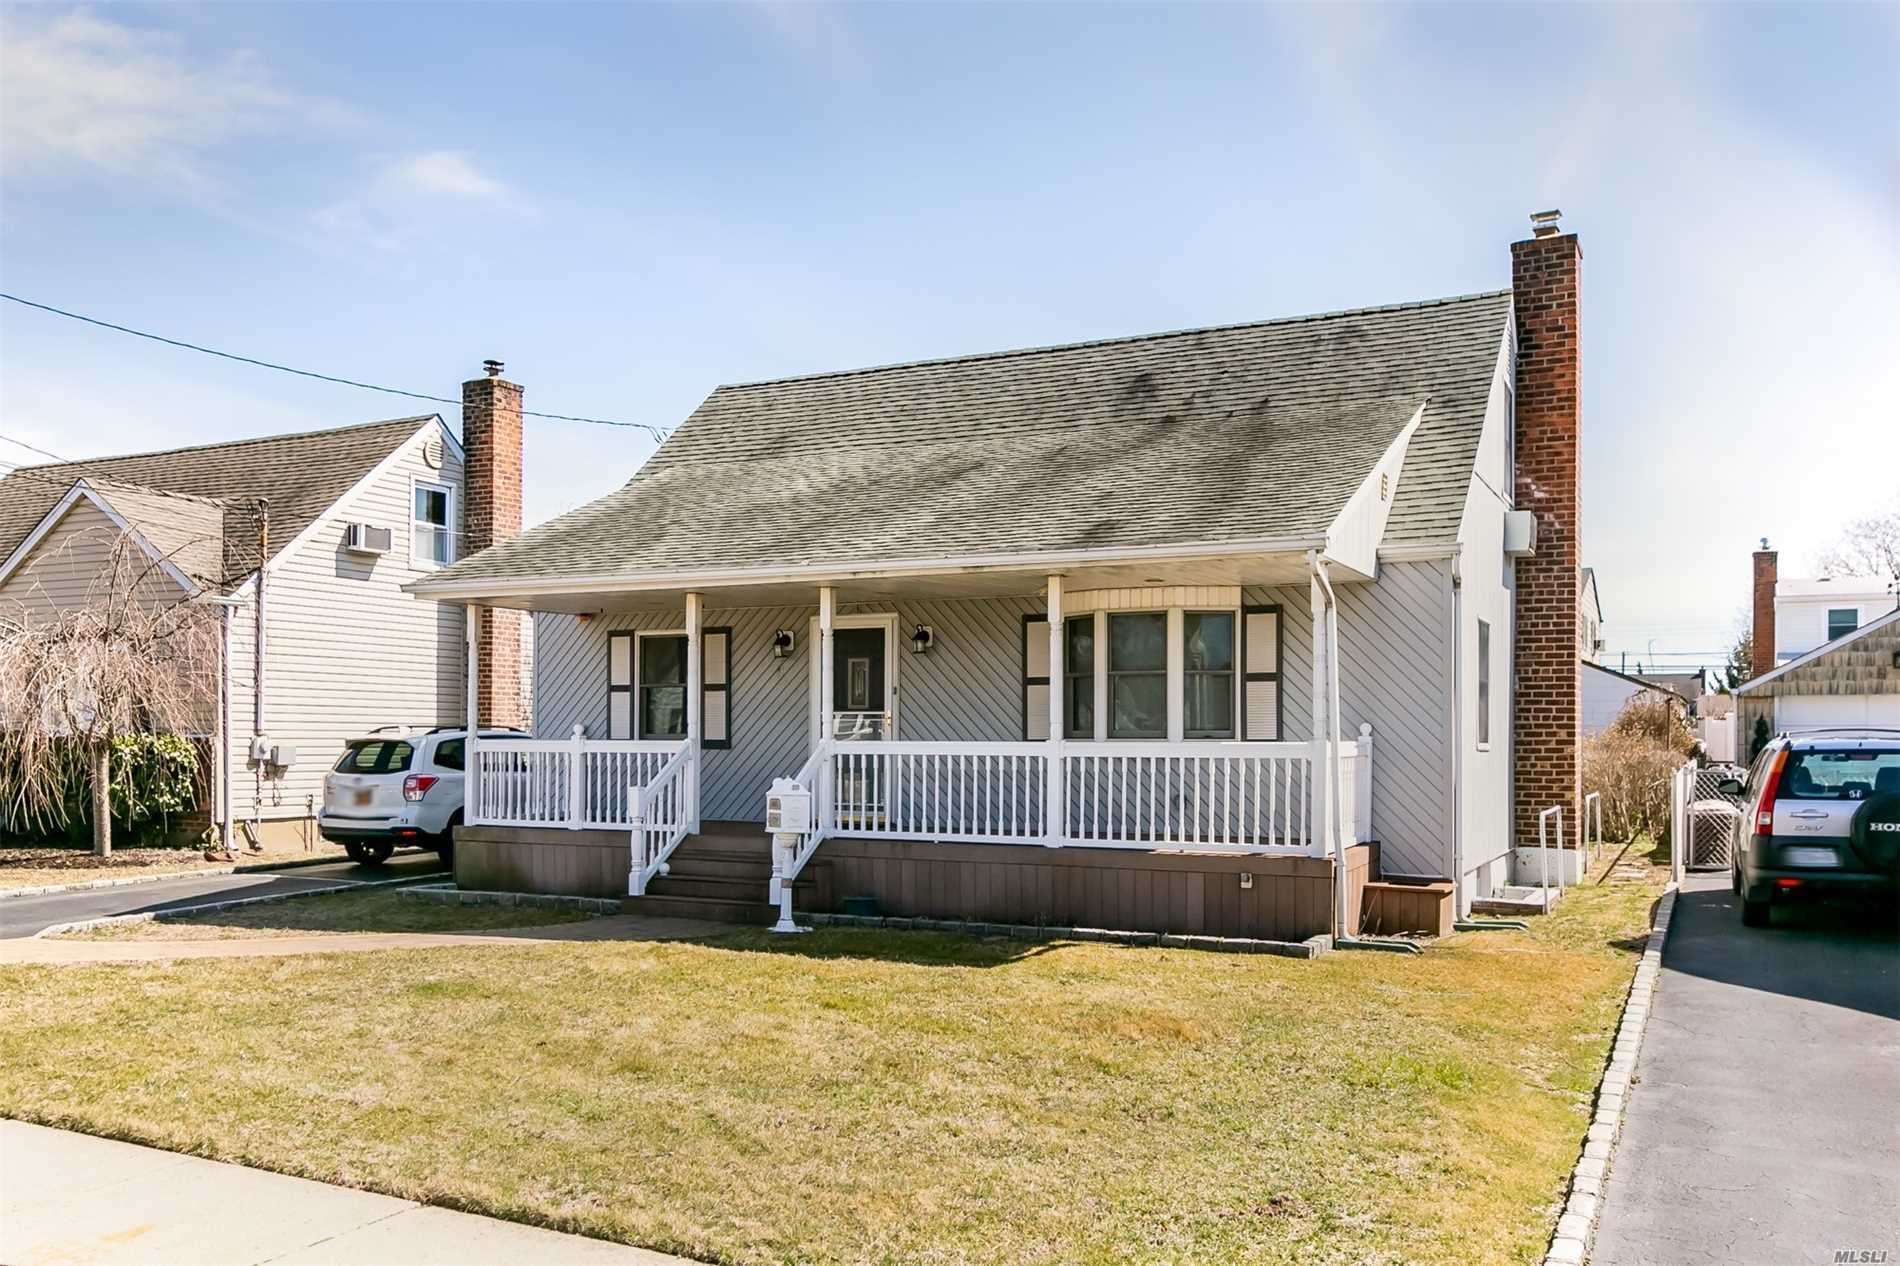 Recently Renovated Cape Featuring Bamboo Hardwood Flooring, 2.5 Baths, Master on 1st Floor. W/D Hook up. Plenty Of Room For Mom. Basement W/Sep Entrance, Beautifully Finished, Front Porch, 2 Car Garage & Private Backyard.Close to LIRR & Village. SUPER LOW TAXES!!